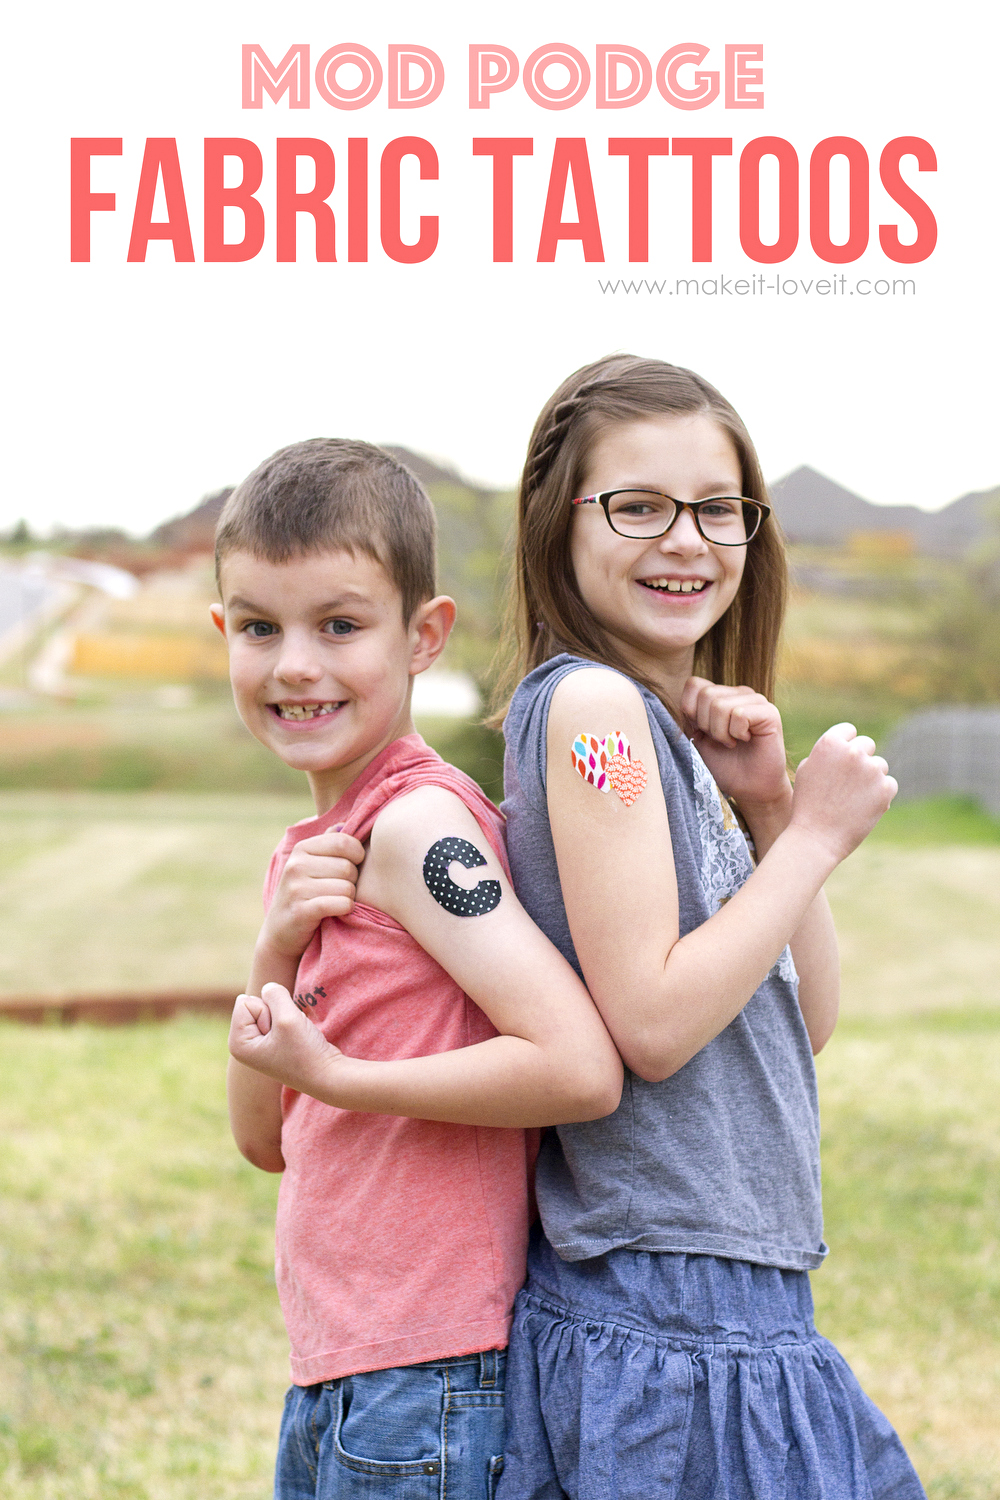 Mod podge fabric tattoos…easy on/off application! (edited: april fool's!!)